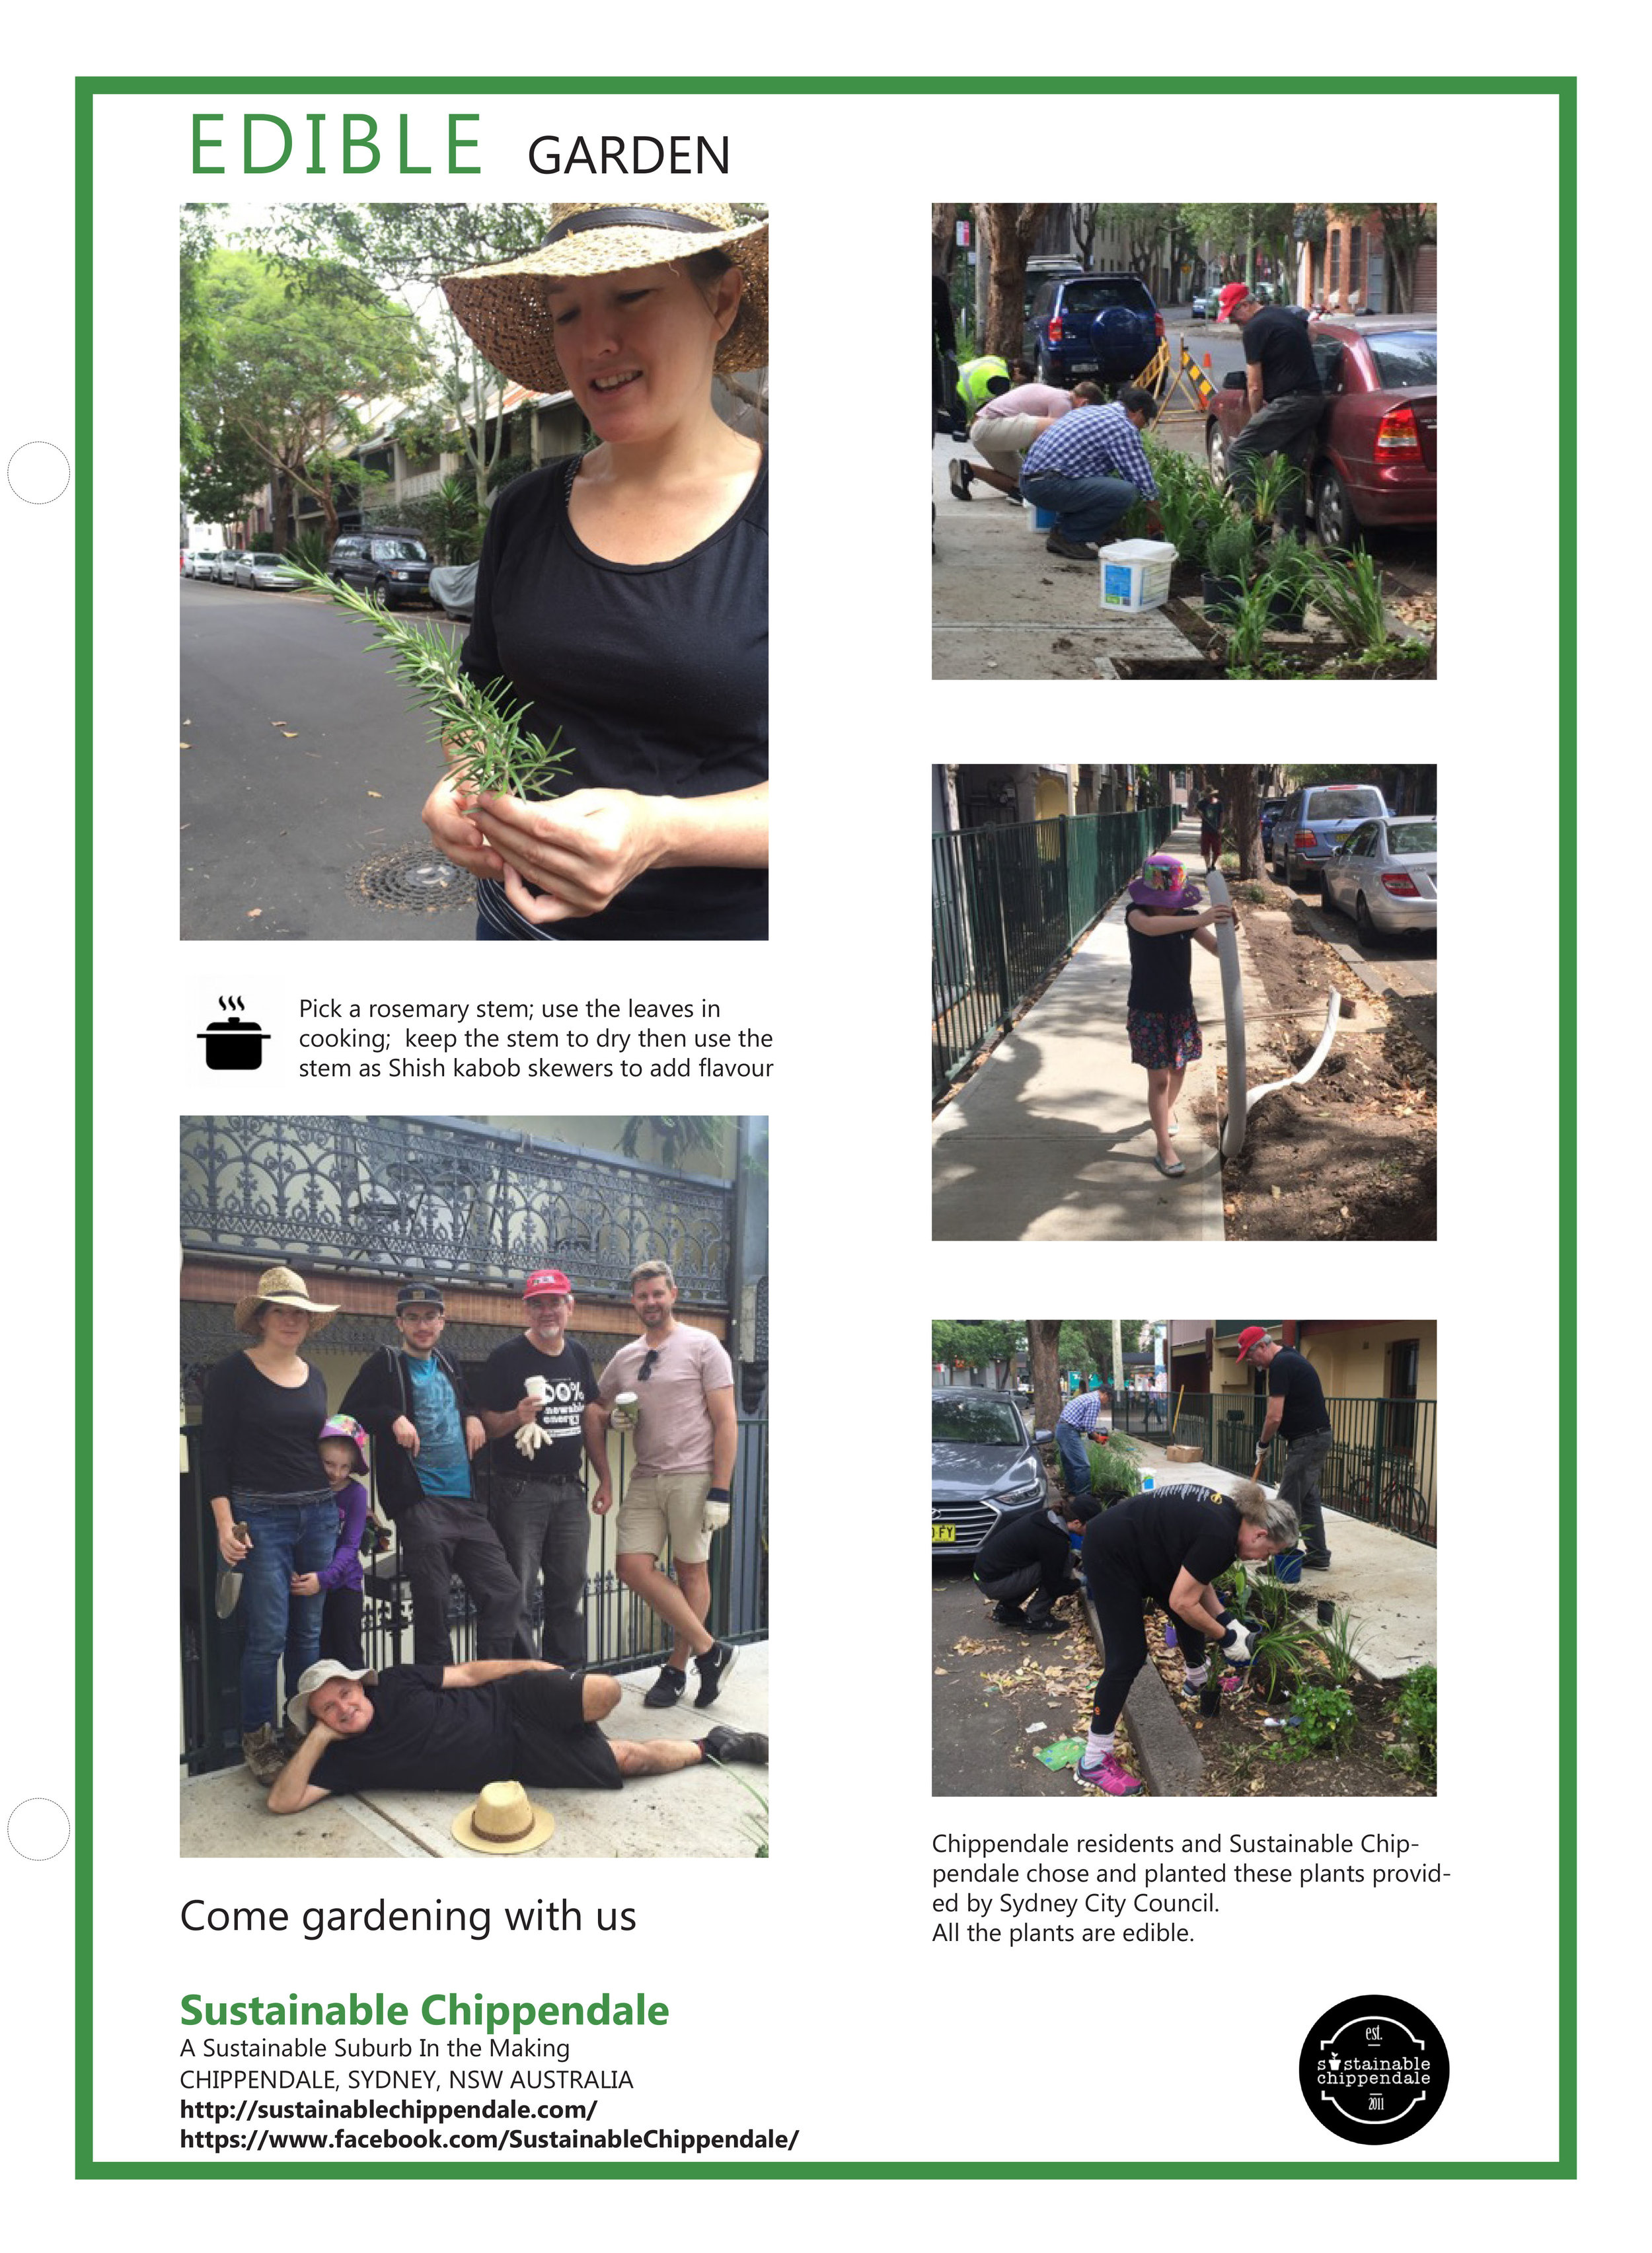 •   In Shepherd Street, Chippendale, NSW, we locals with Sydney City Council designed, built and planted road gardens and made them self-irrigating.